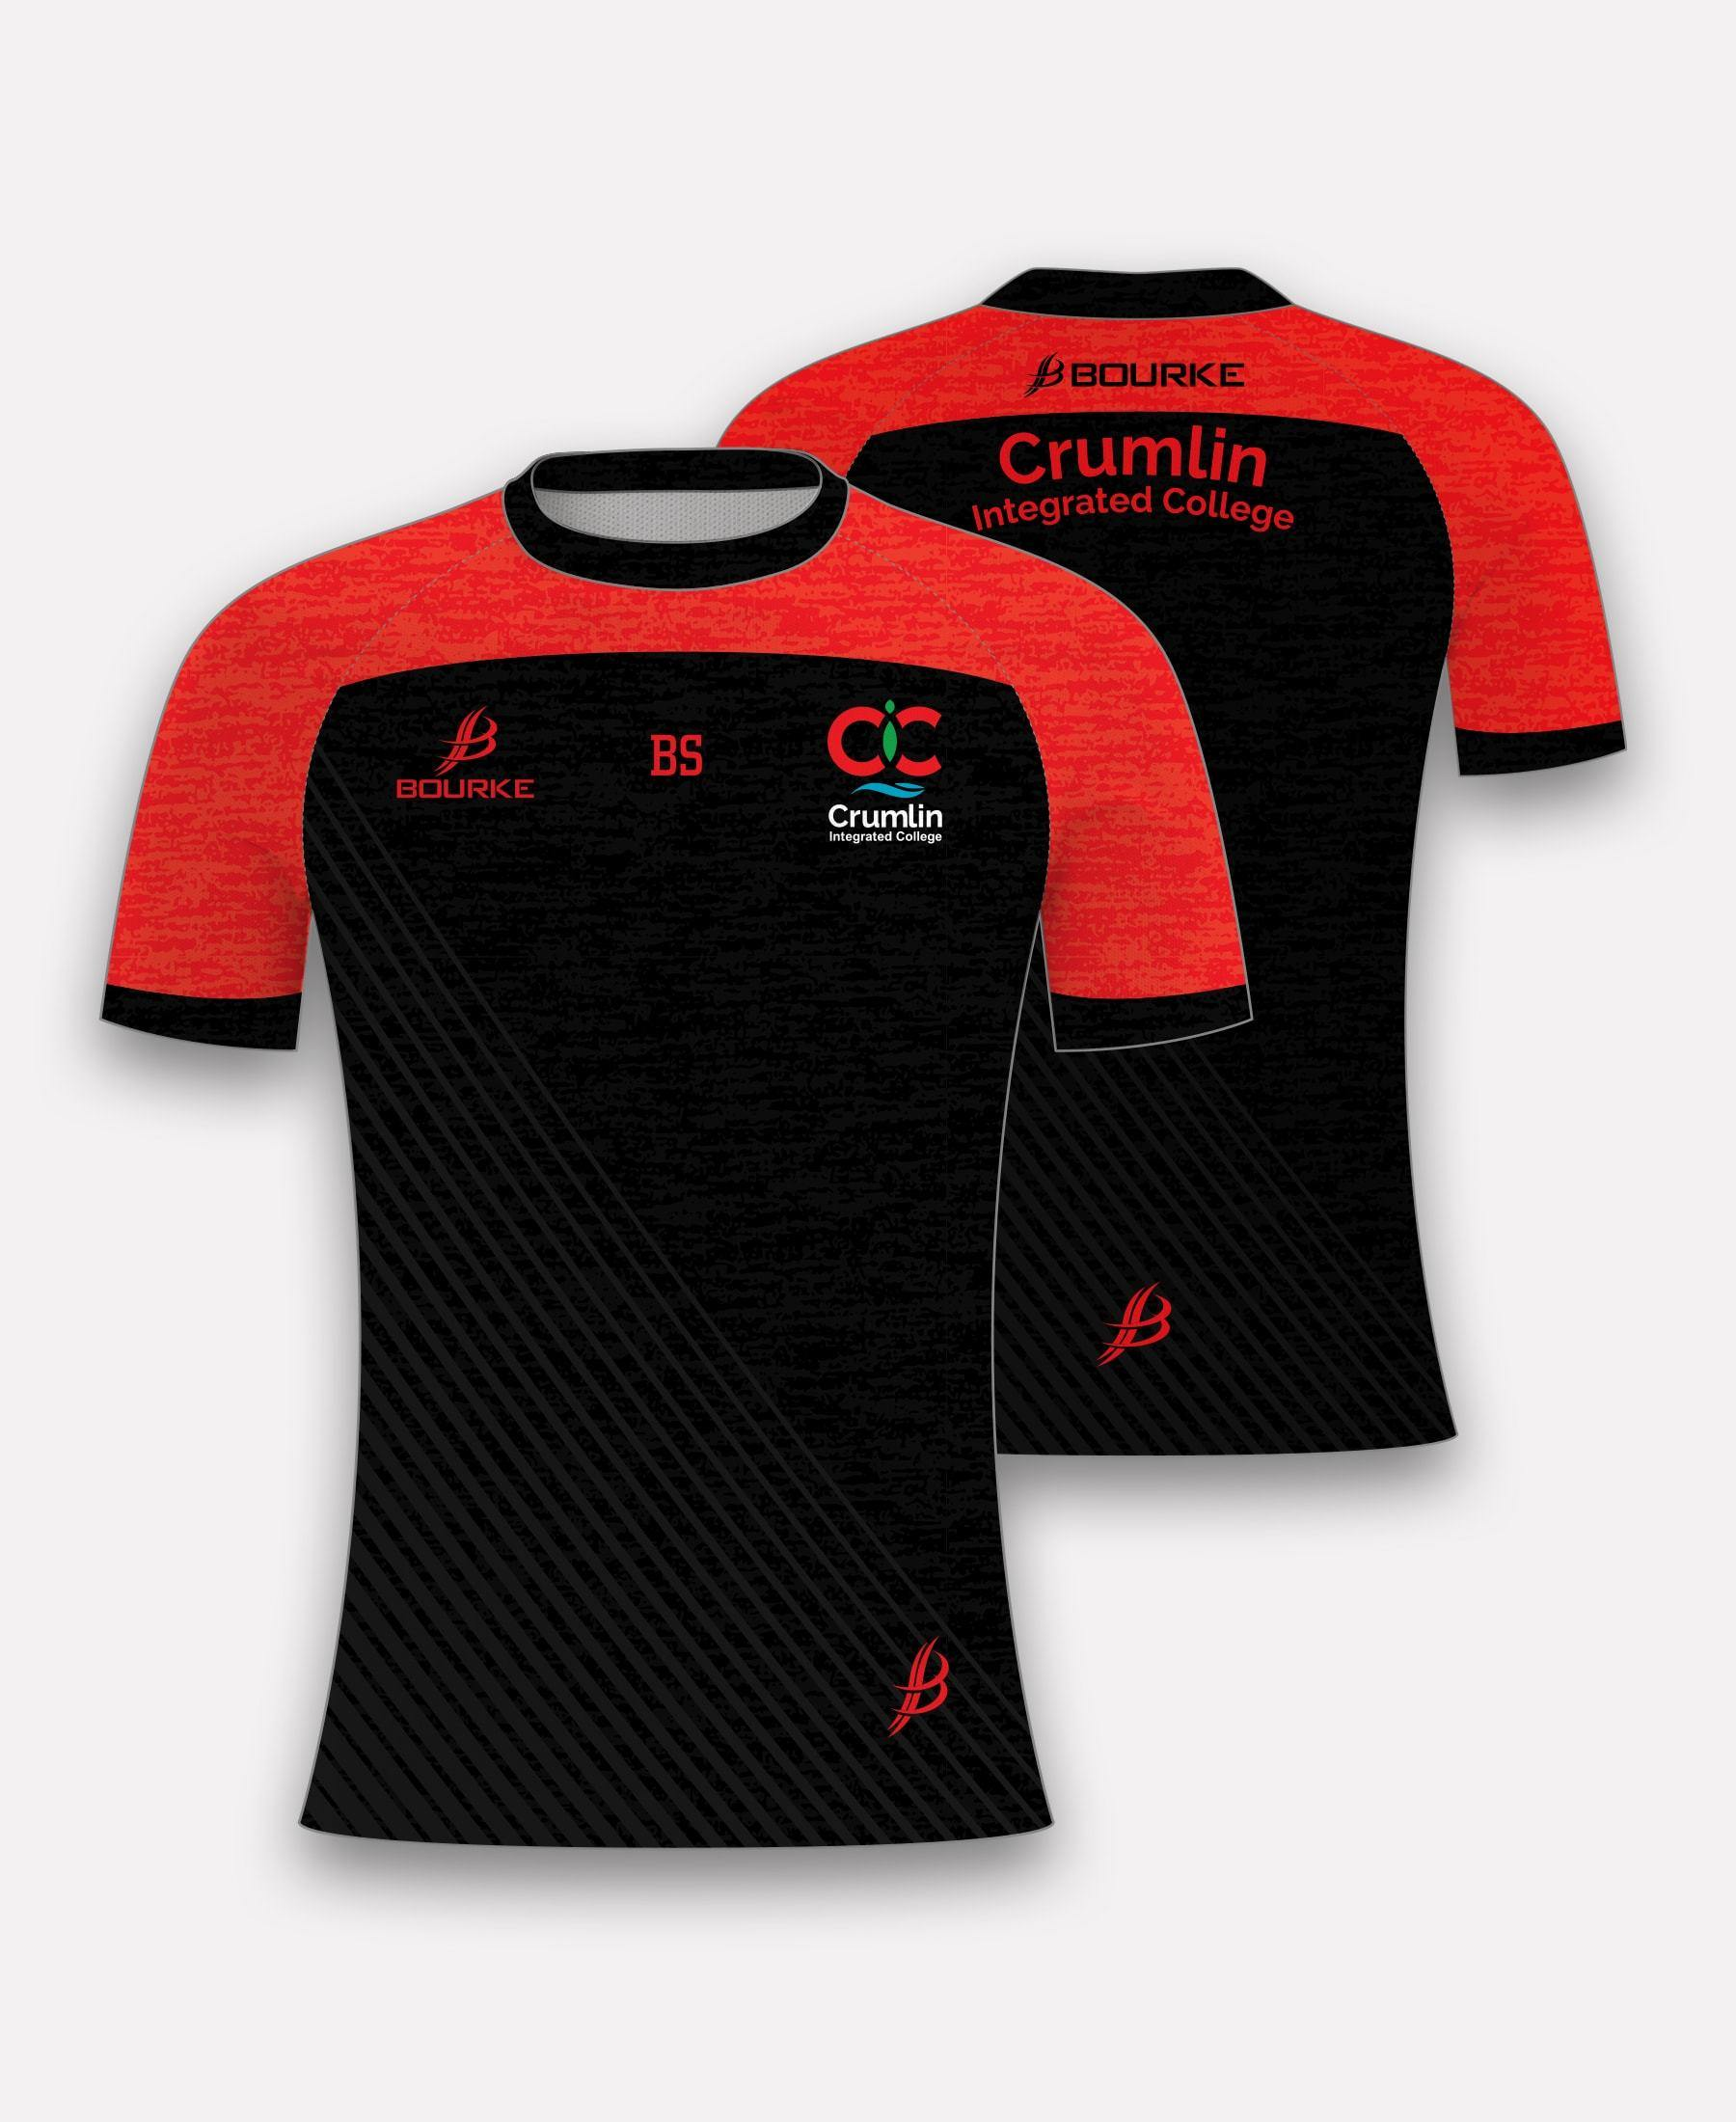 Crumlin Integrated College Jersey - Bourke Sports